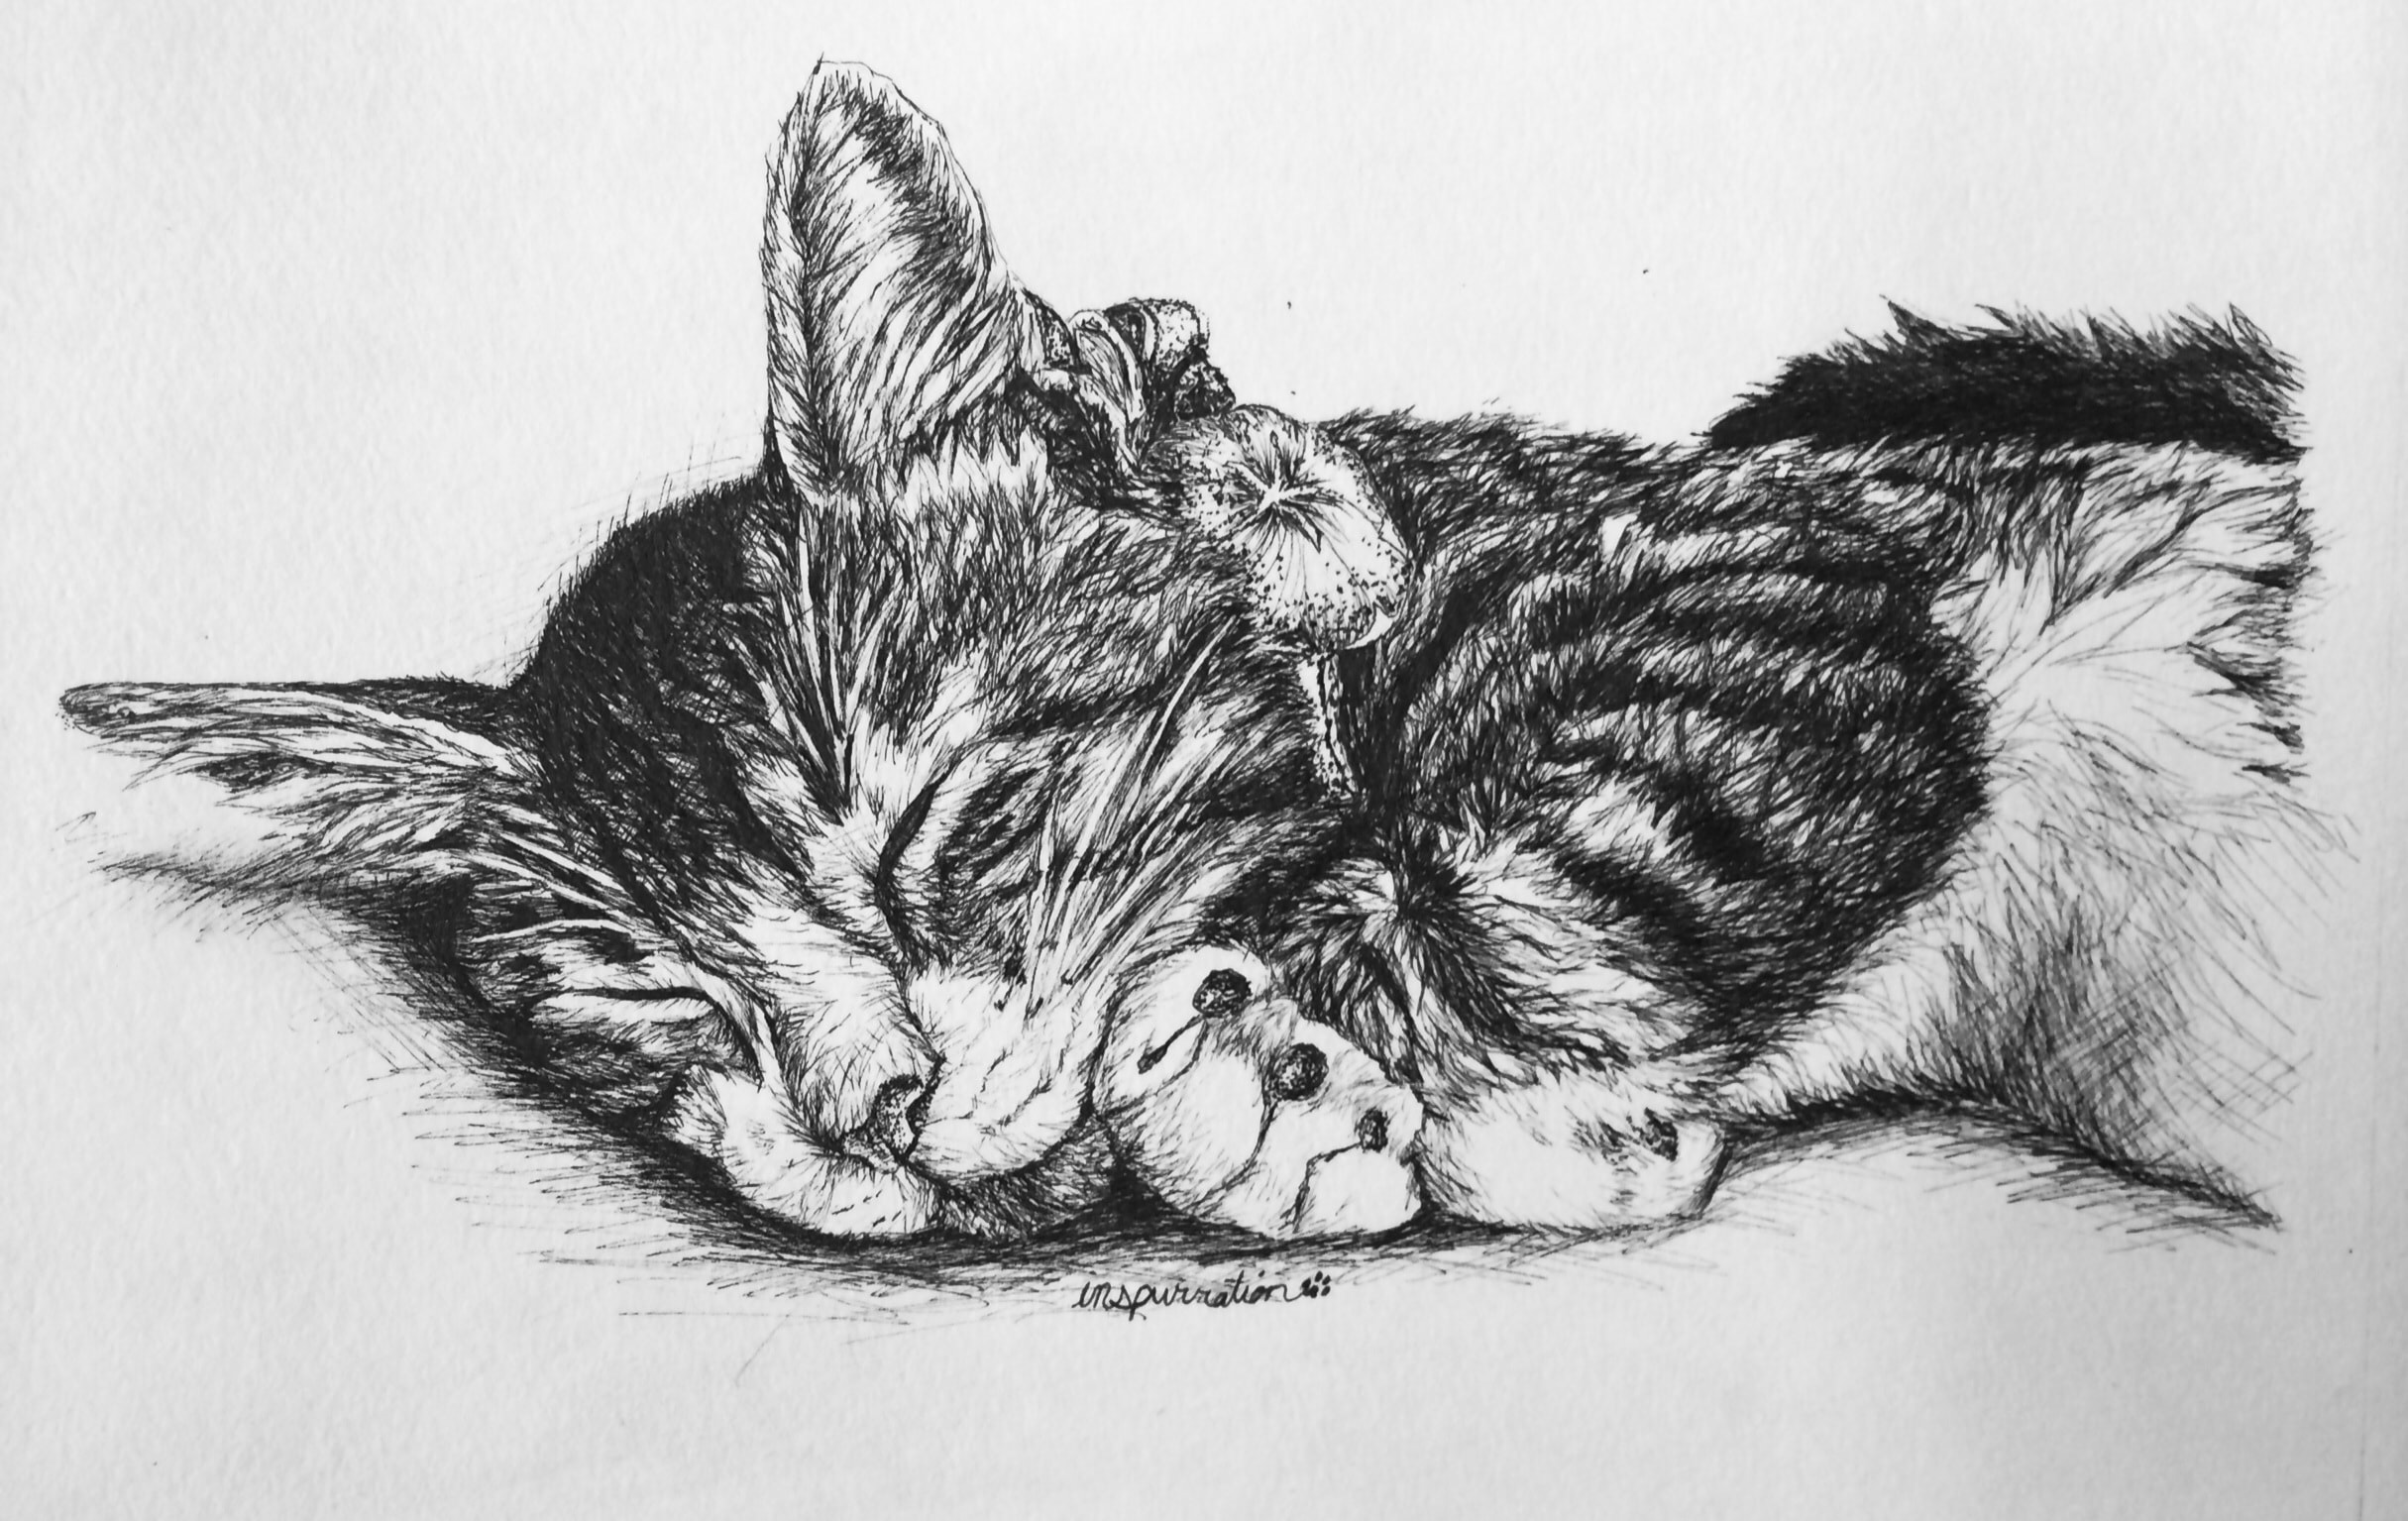 Janet England S Blog Custom Pen And Ink Cat Drawings By